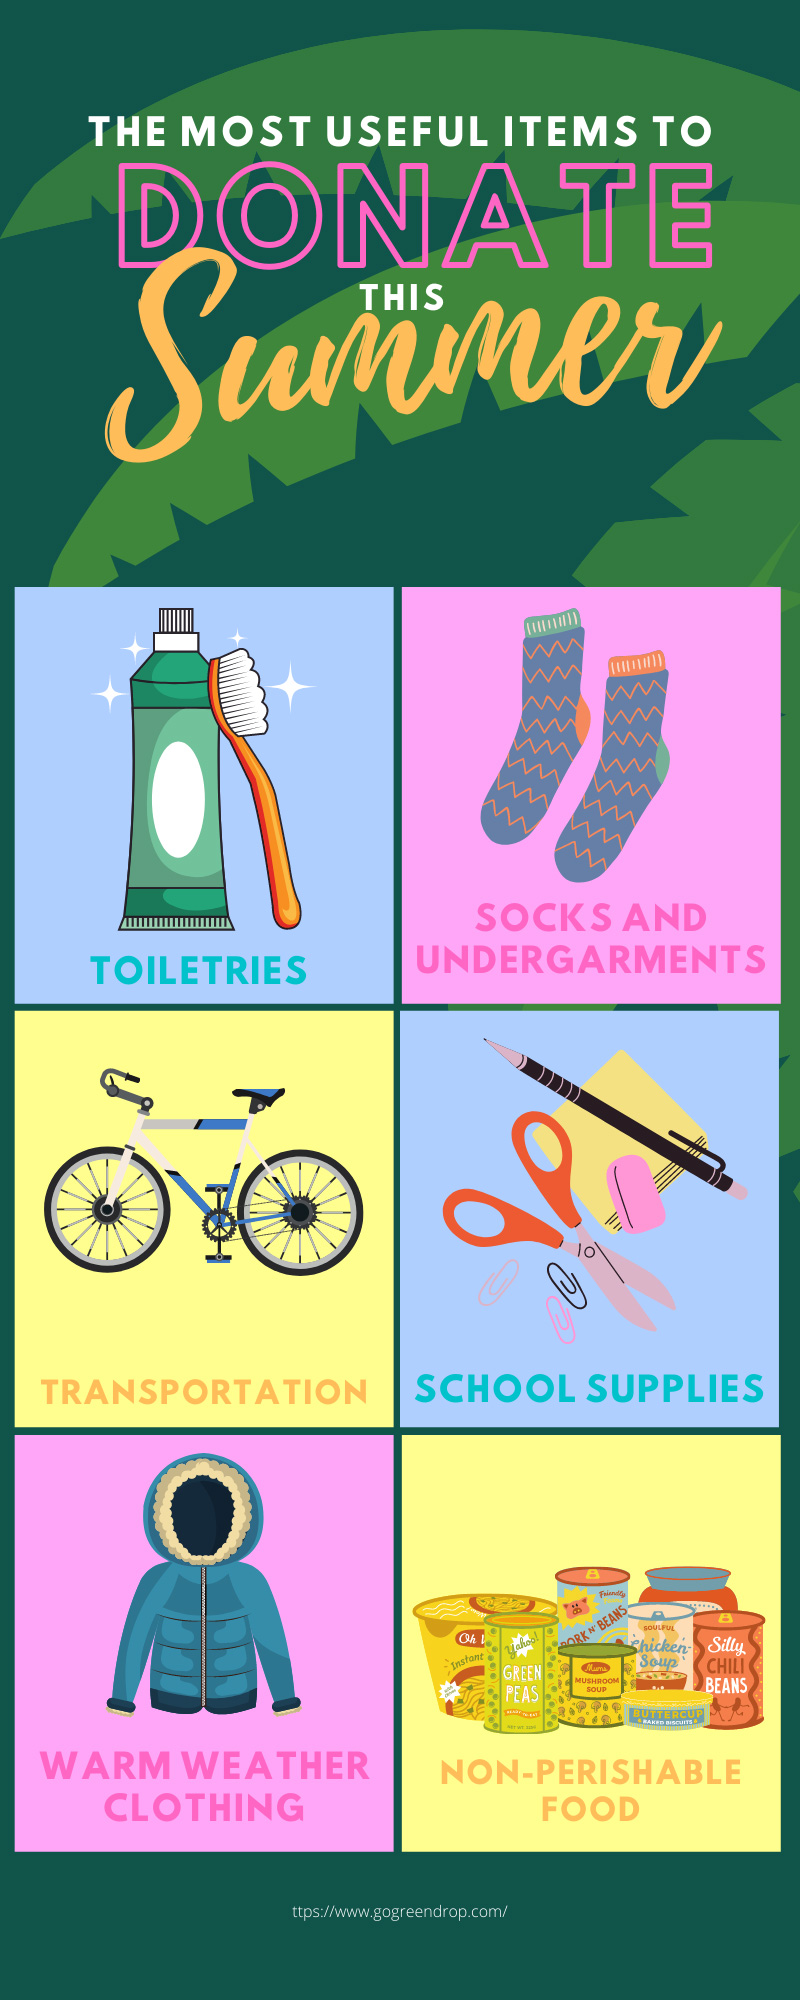 The Most Useful Items To Donate in the Summer